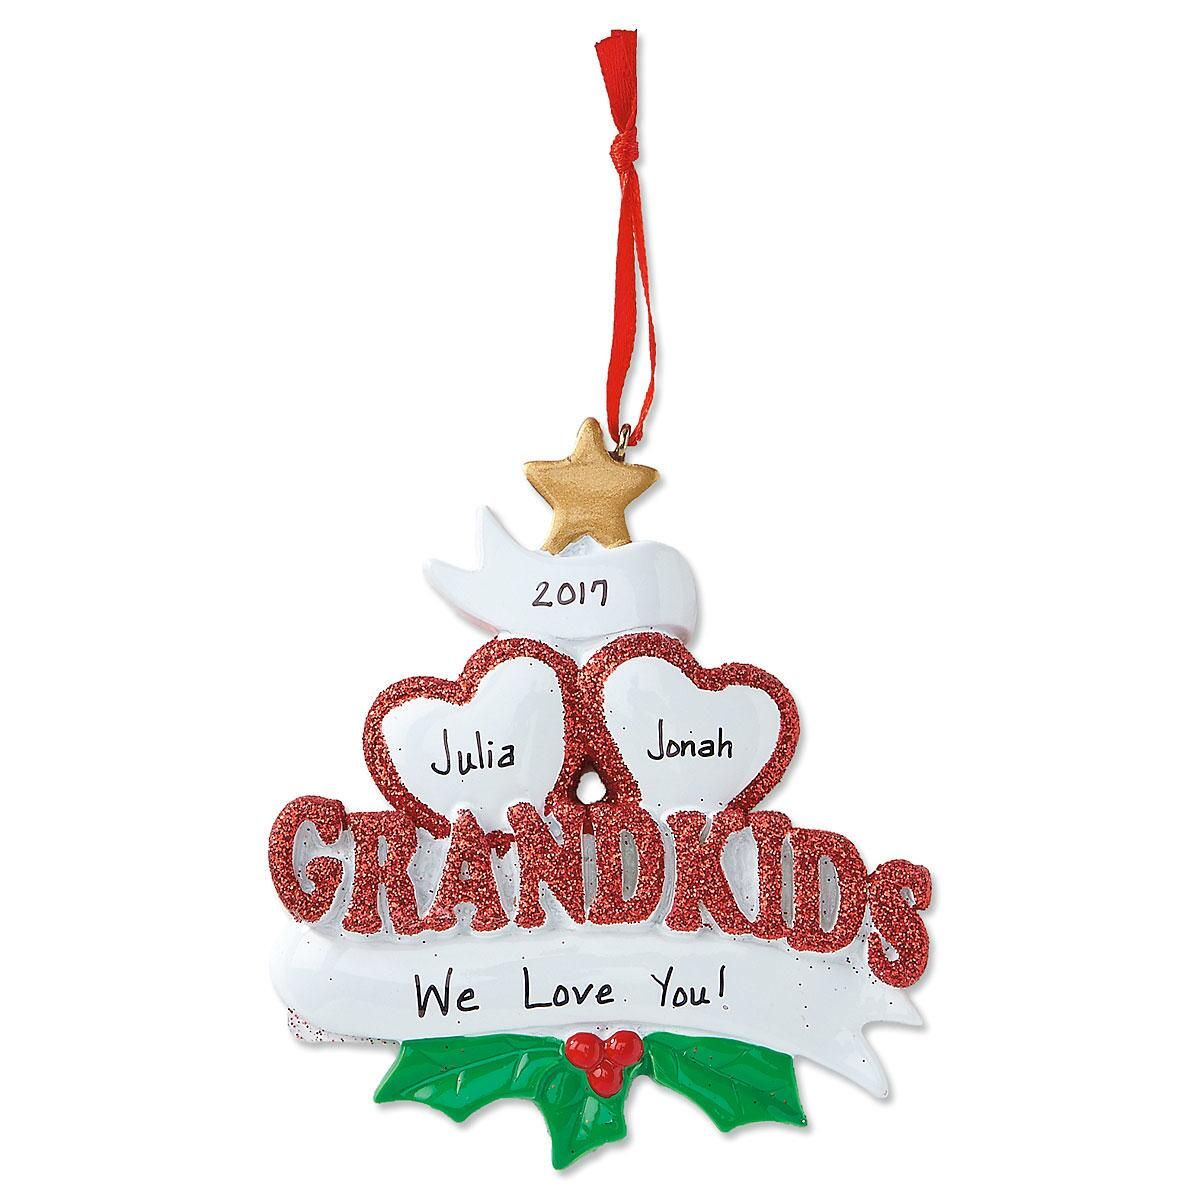 Grandkids with Hearts Personalized Christmas Ornament